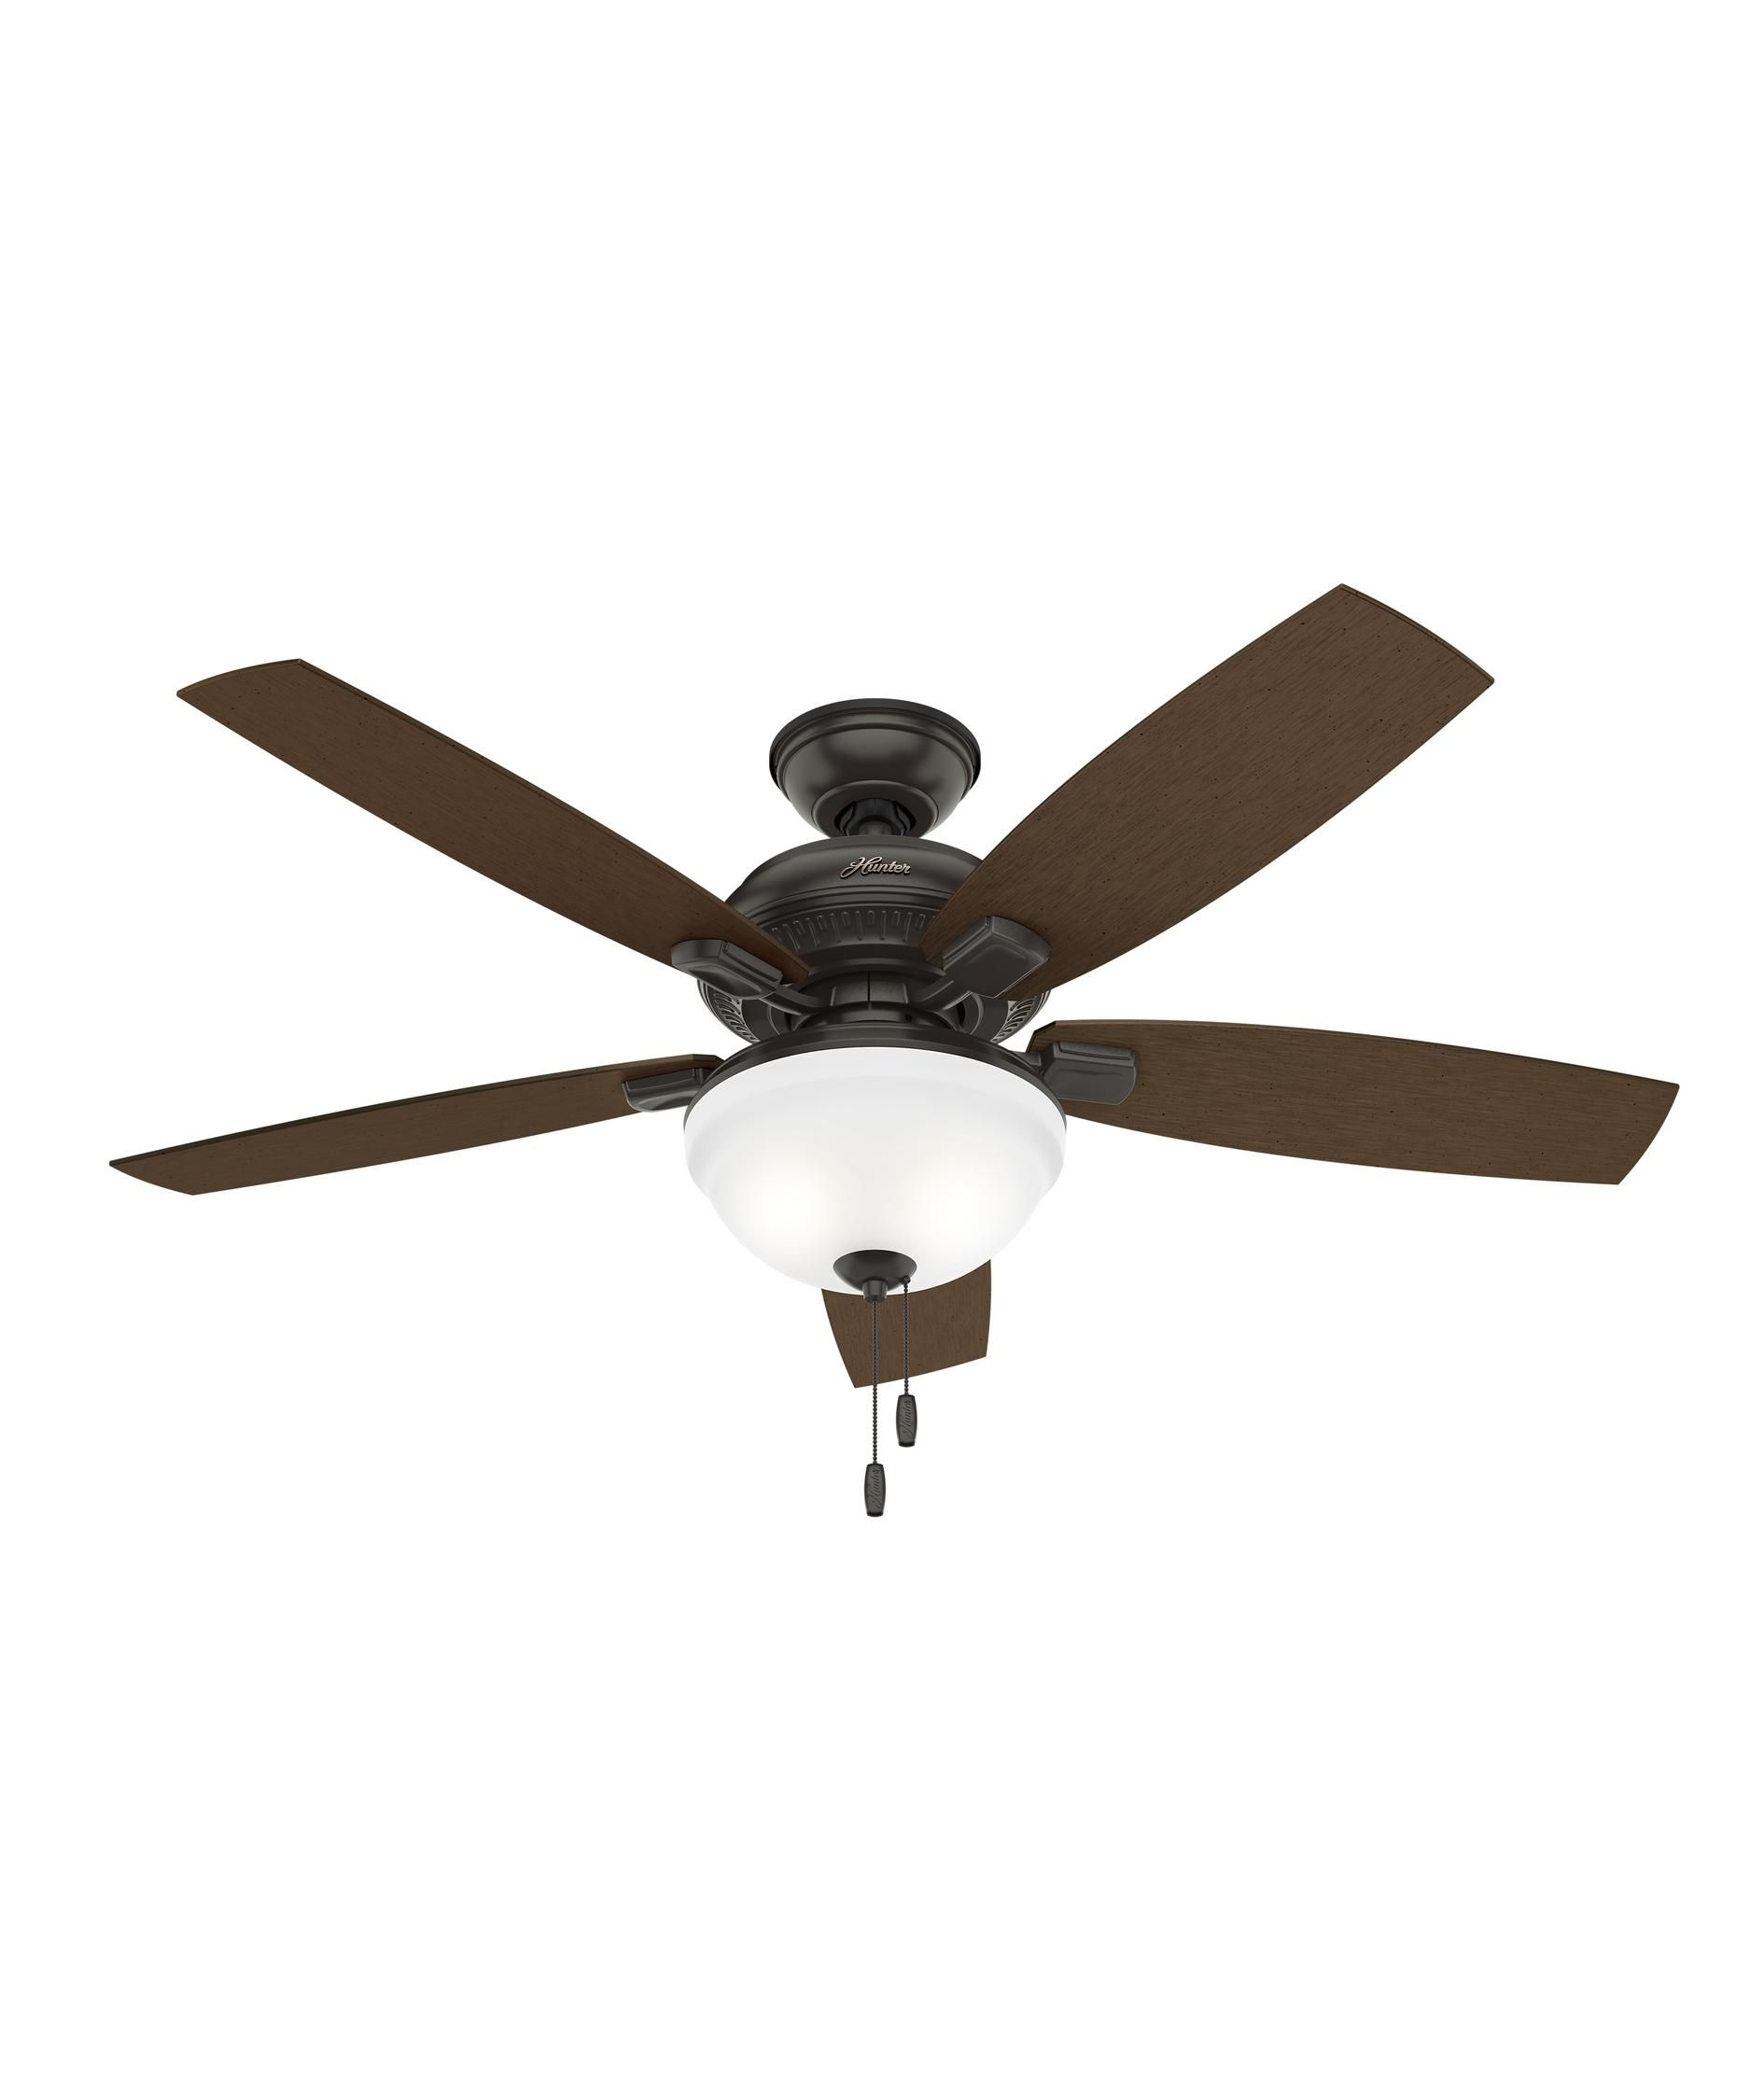 cfm ceiling hatteras capitol inch kichler outdoor lighting galvanized fan item com bay blade